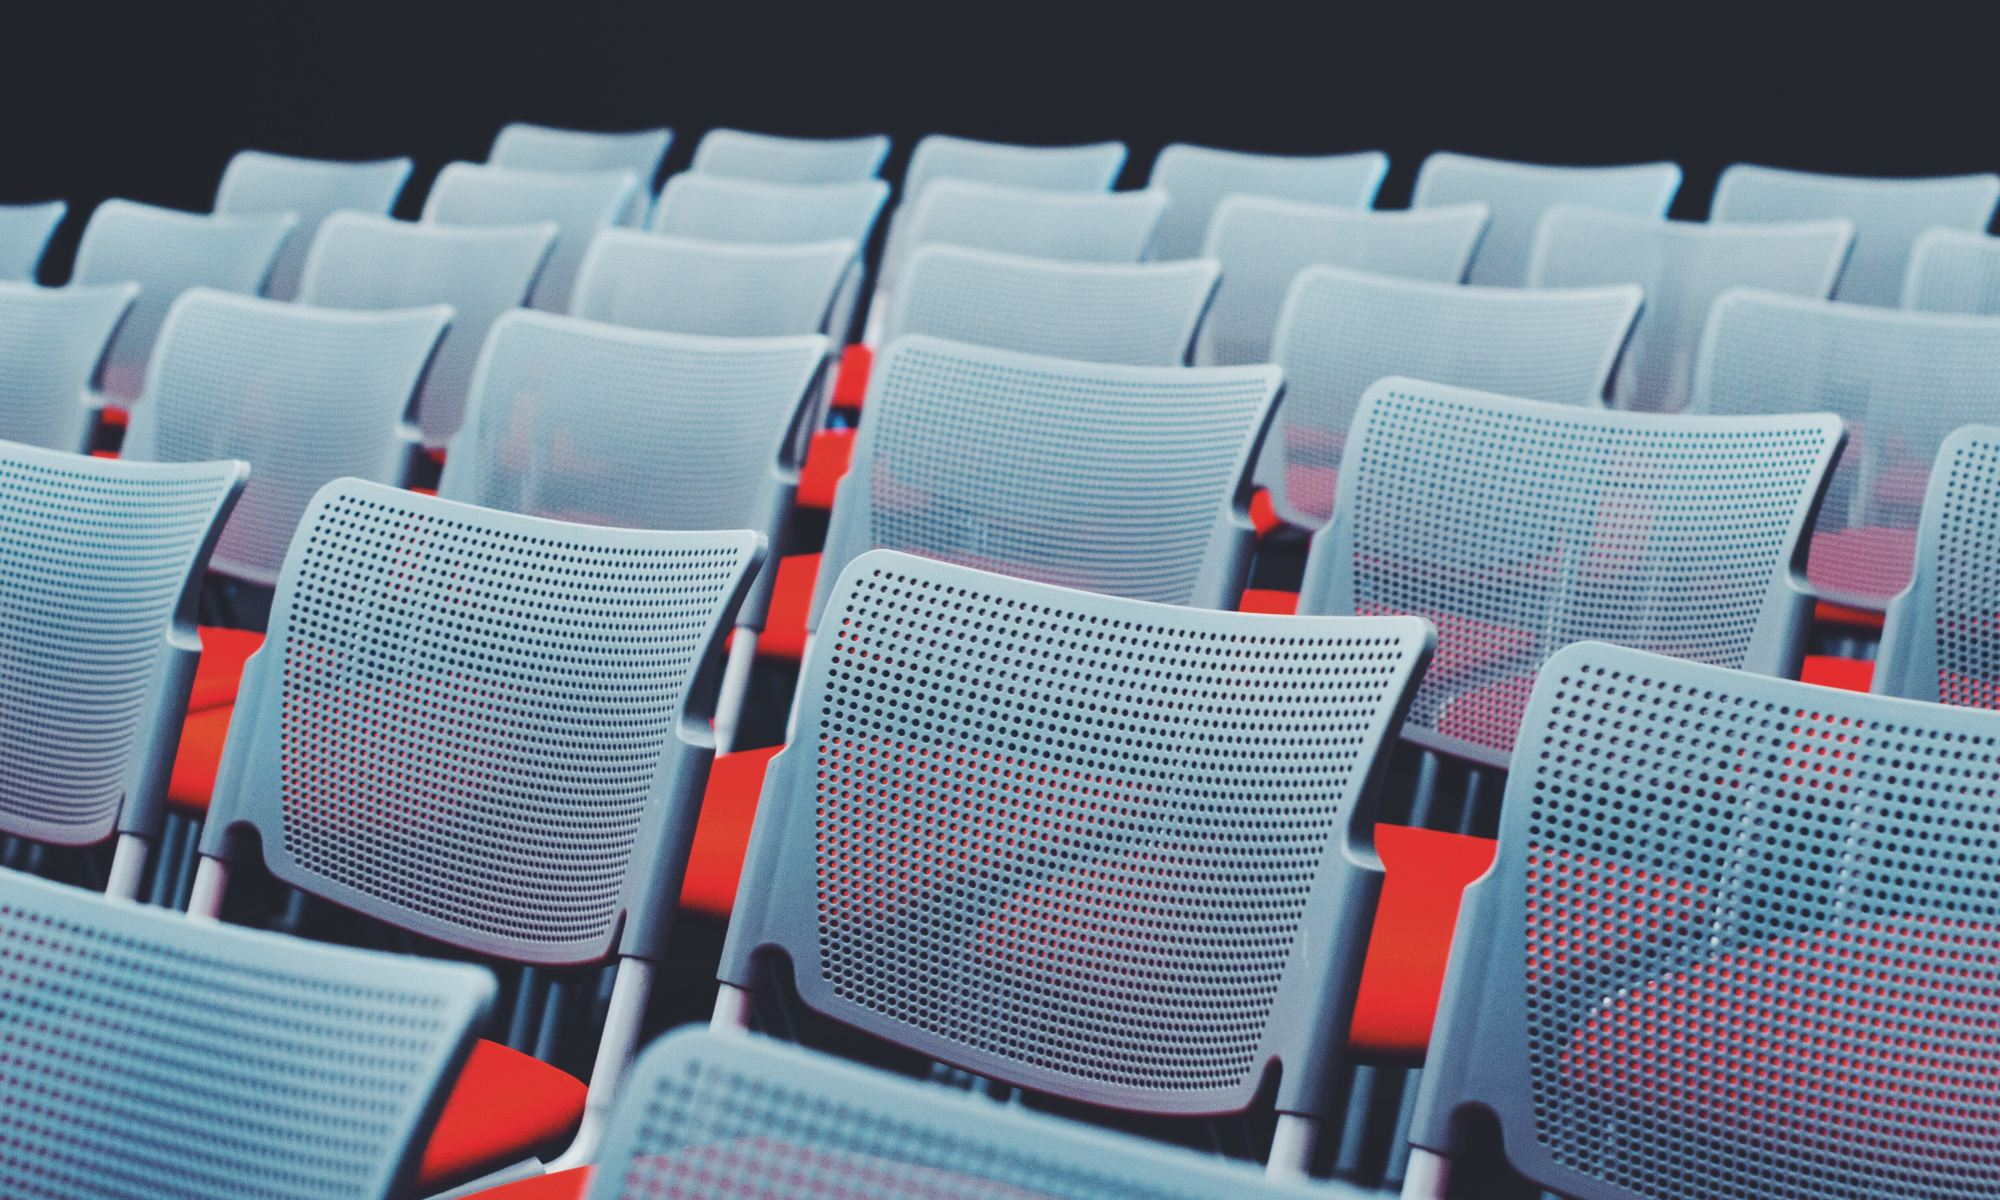 Empty Conference Chairs | Photo by ål nik on Unsplash